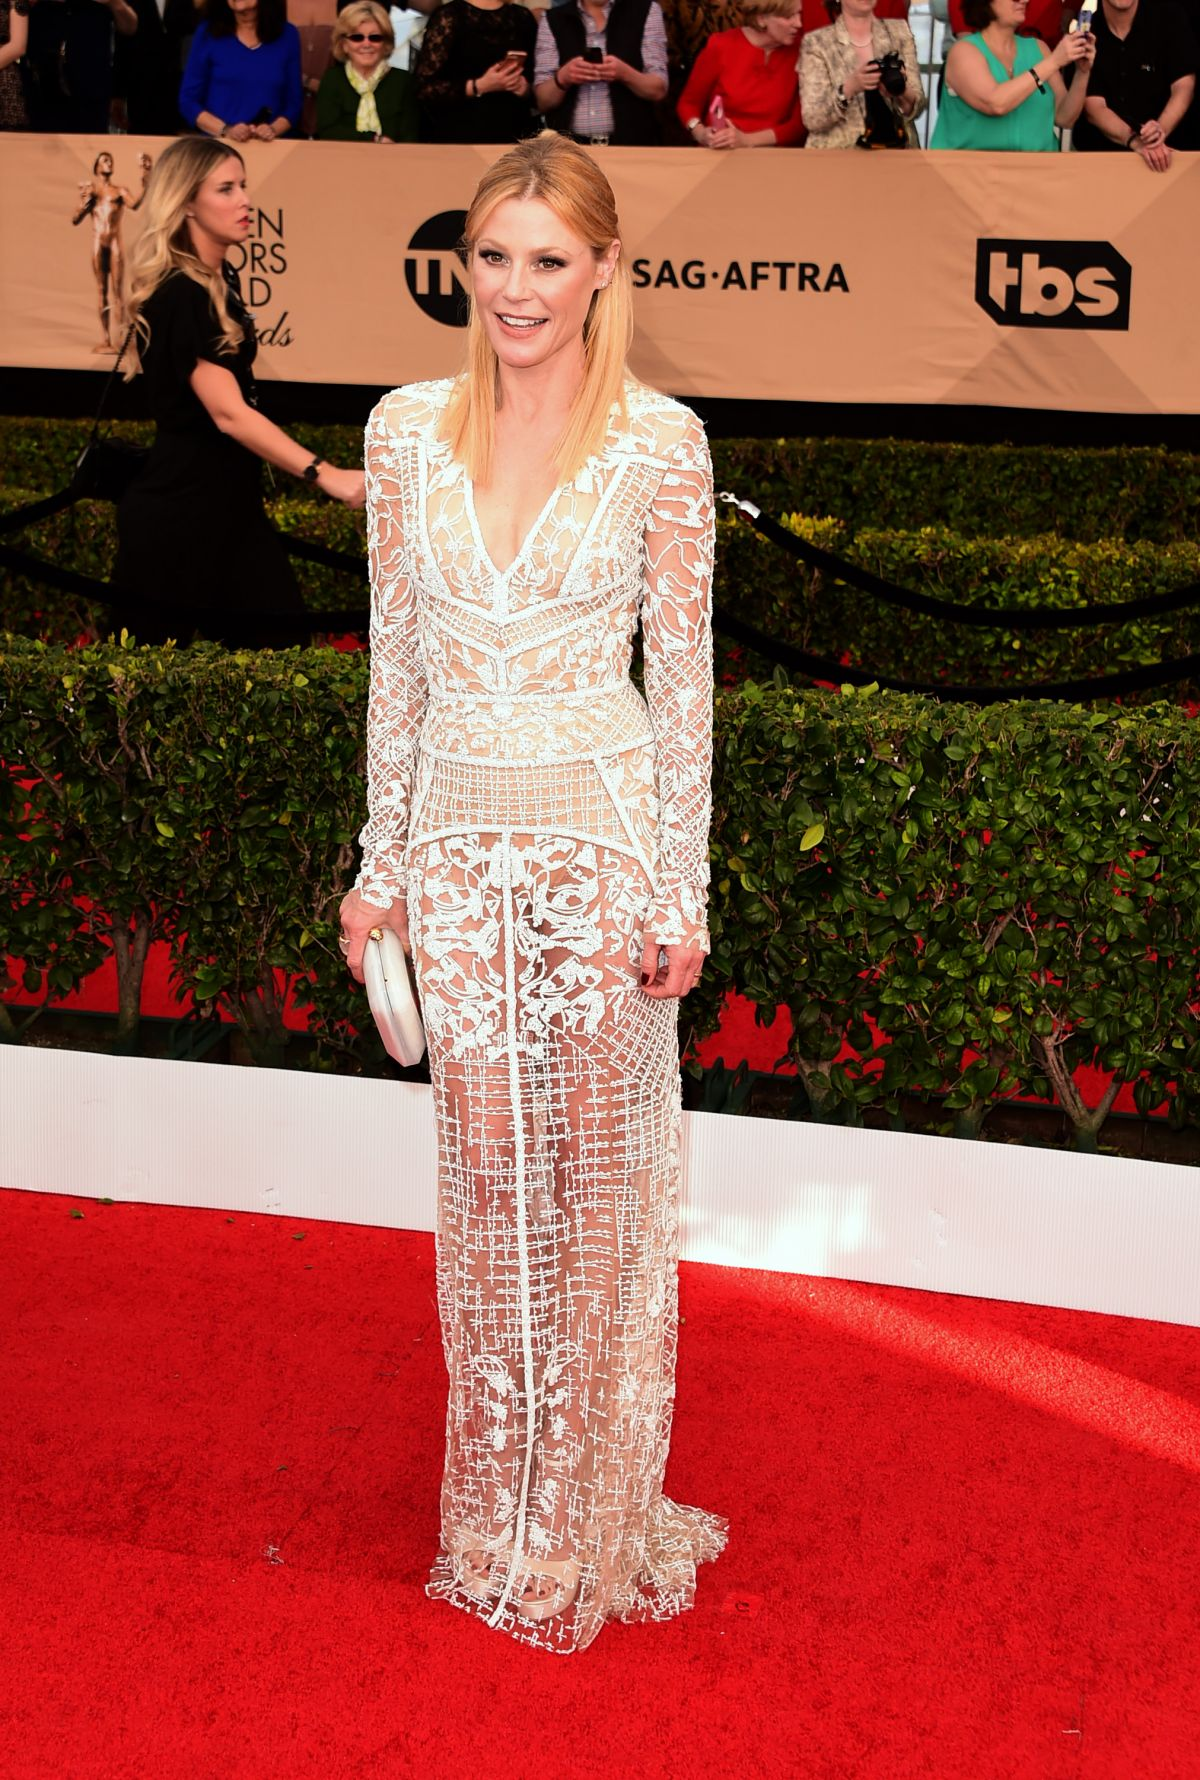 JULIE BOWEN at 23rd Annual Screen Actors Guild Awards in Los Angeles 01/29/2017